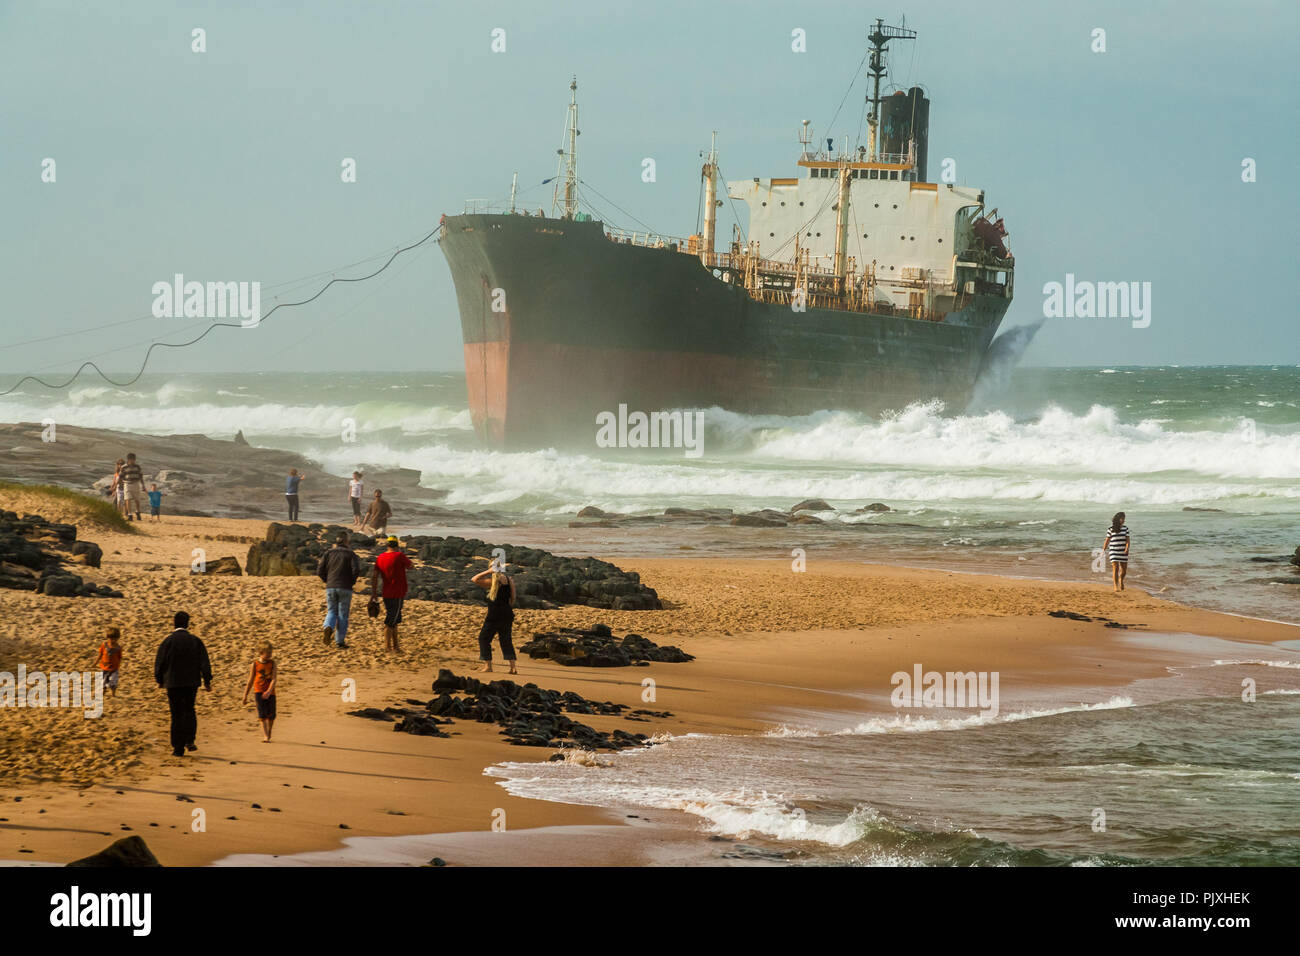 People flocking to see The Phoenix, a derelict bulk tanker, ran aground at Sheffield Beach on Durban's North Coast - Stock Image